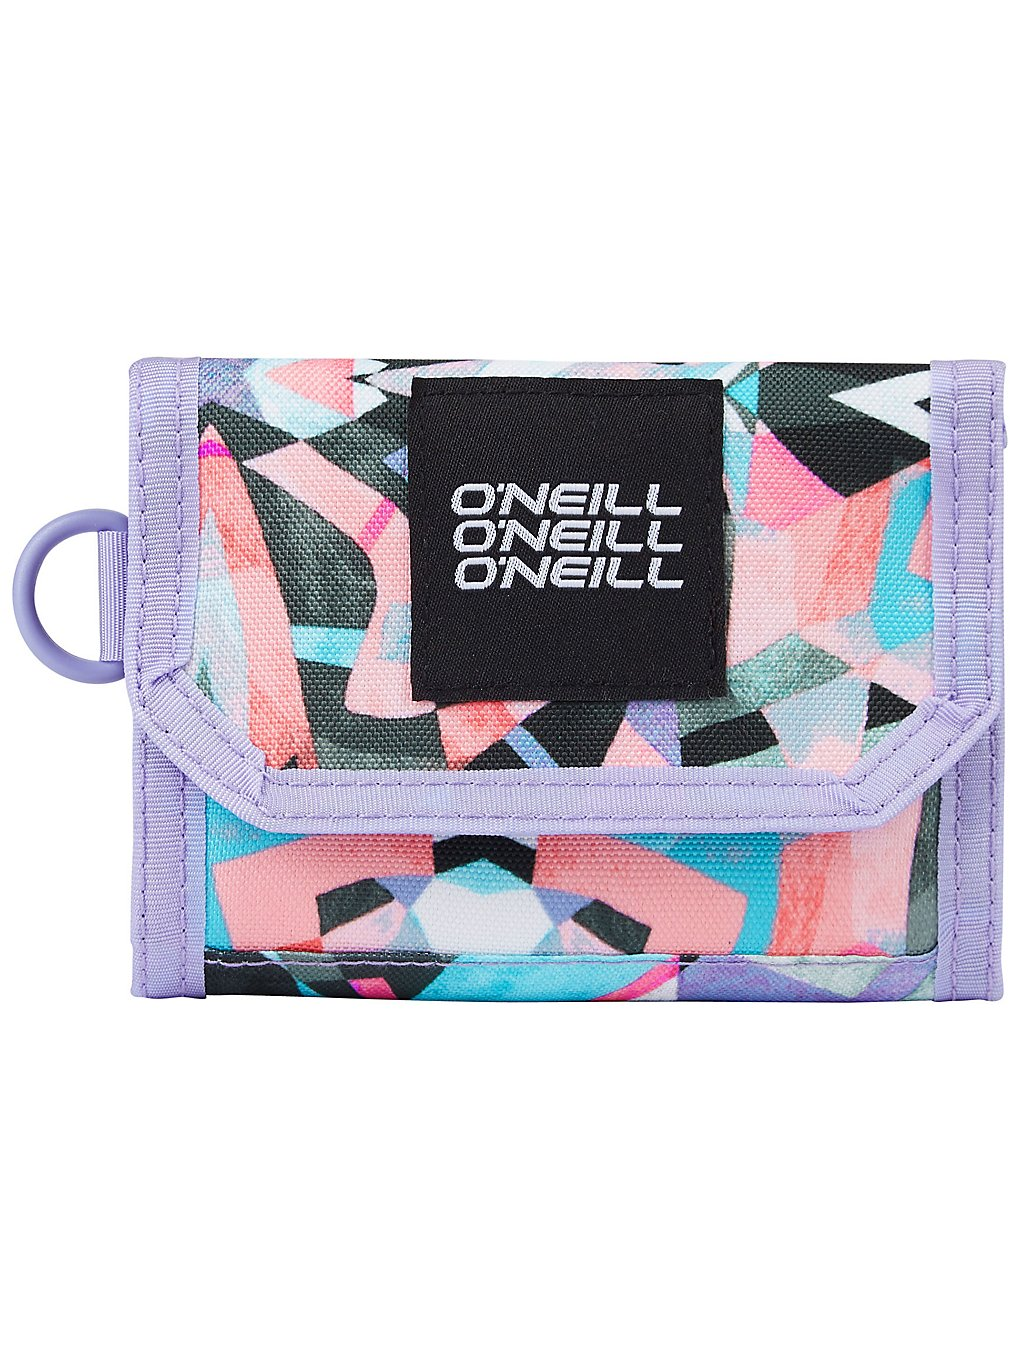 Image of O'Neill Pocketbook Wallet bianco